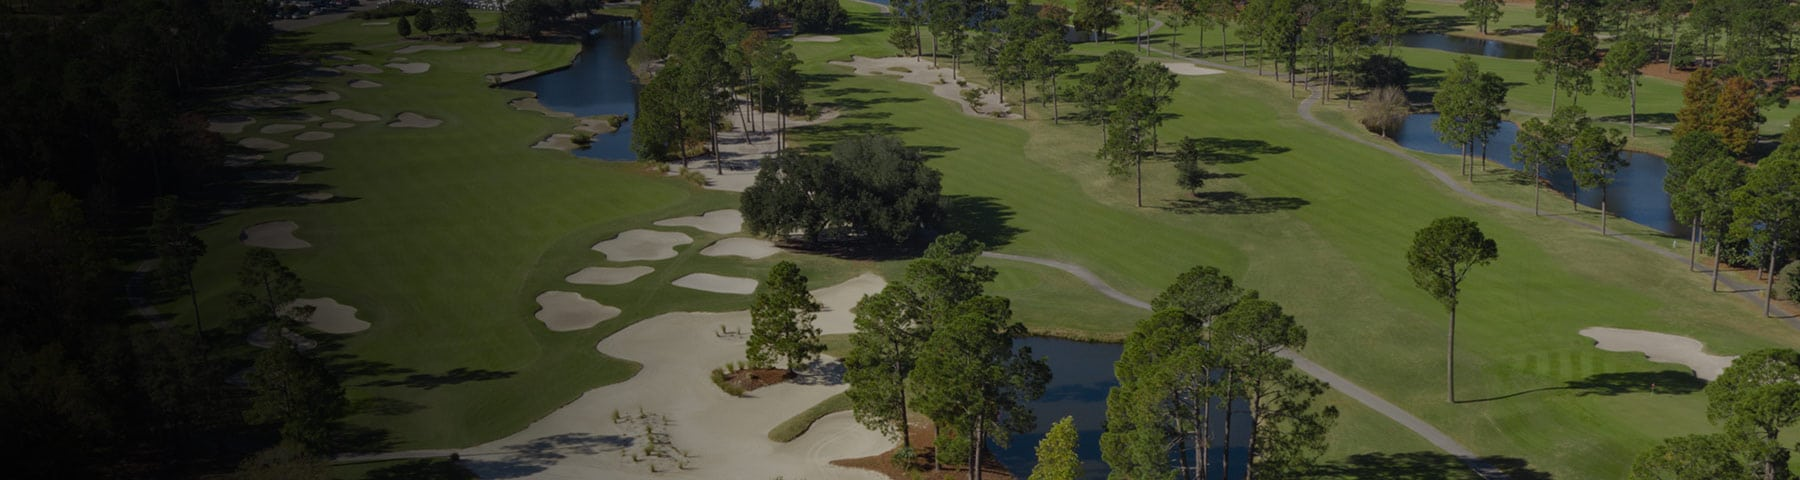 King's North Golf Course